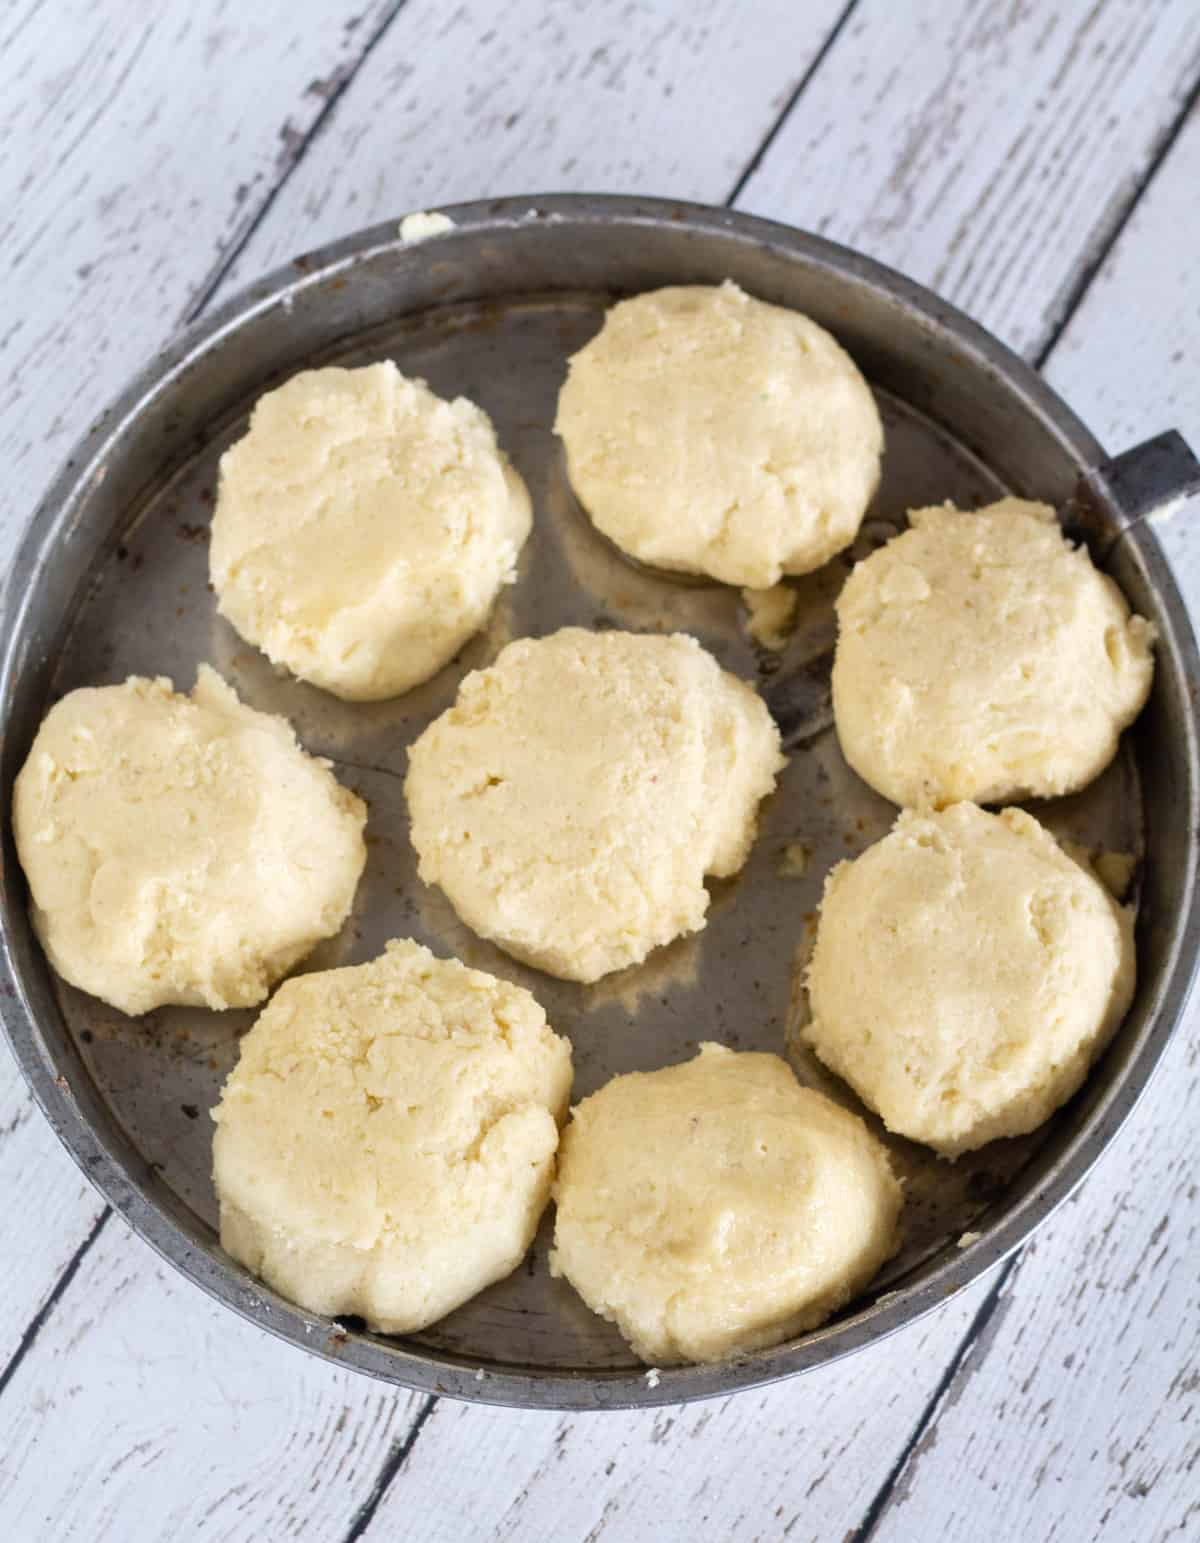 unbaked biscuits in pie dish